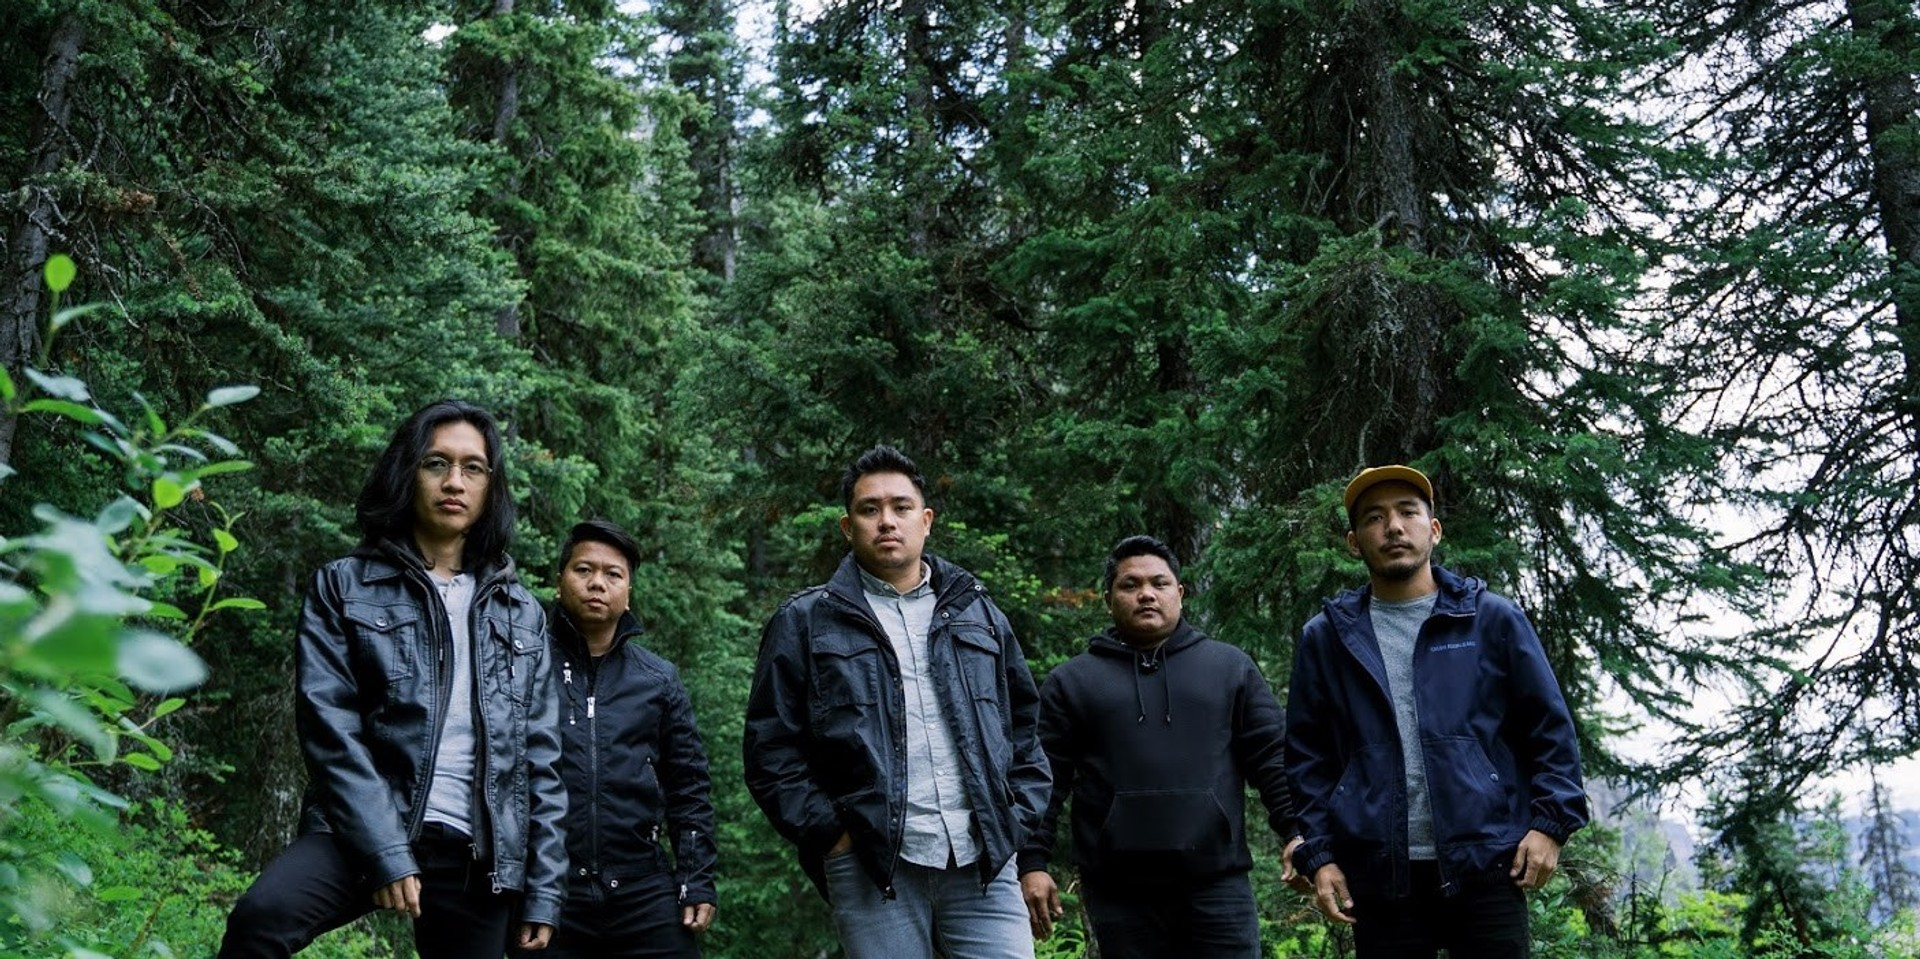 December Avenue share new heartbreaking single 'Kahit Sa Panaginip' from upcoming album – listen